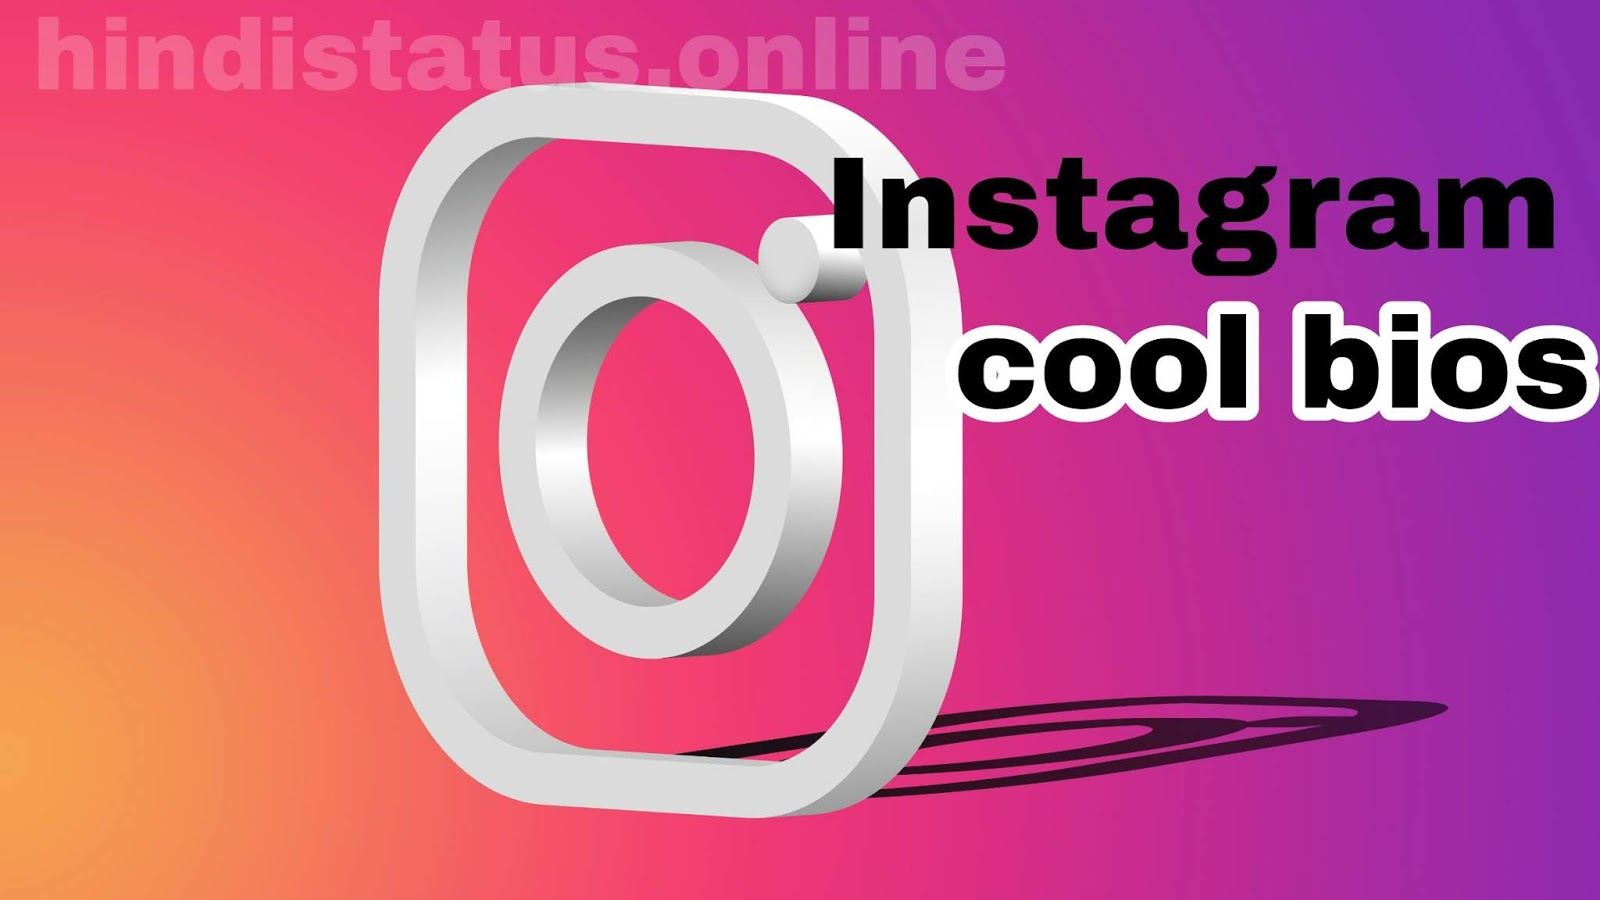 fadu instagram bio,s | cool new instagram bio 2018 hindi - Akshay